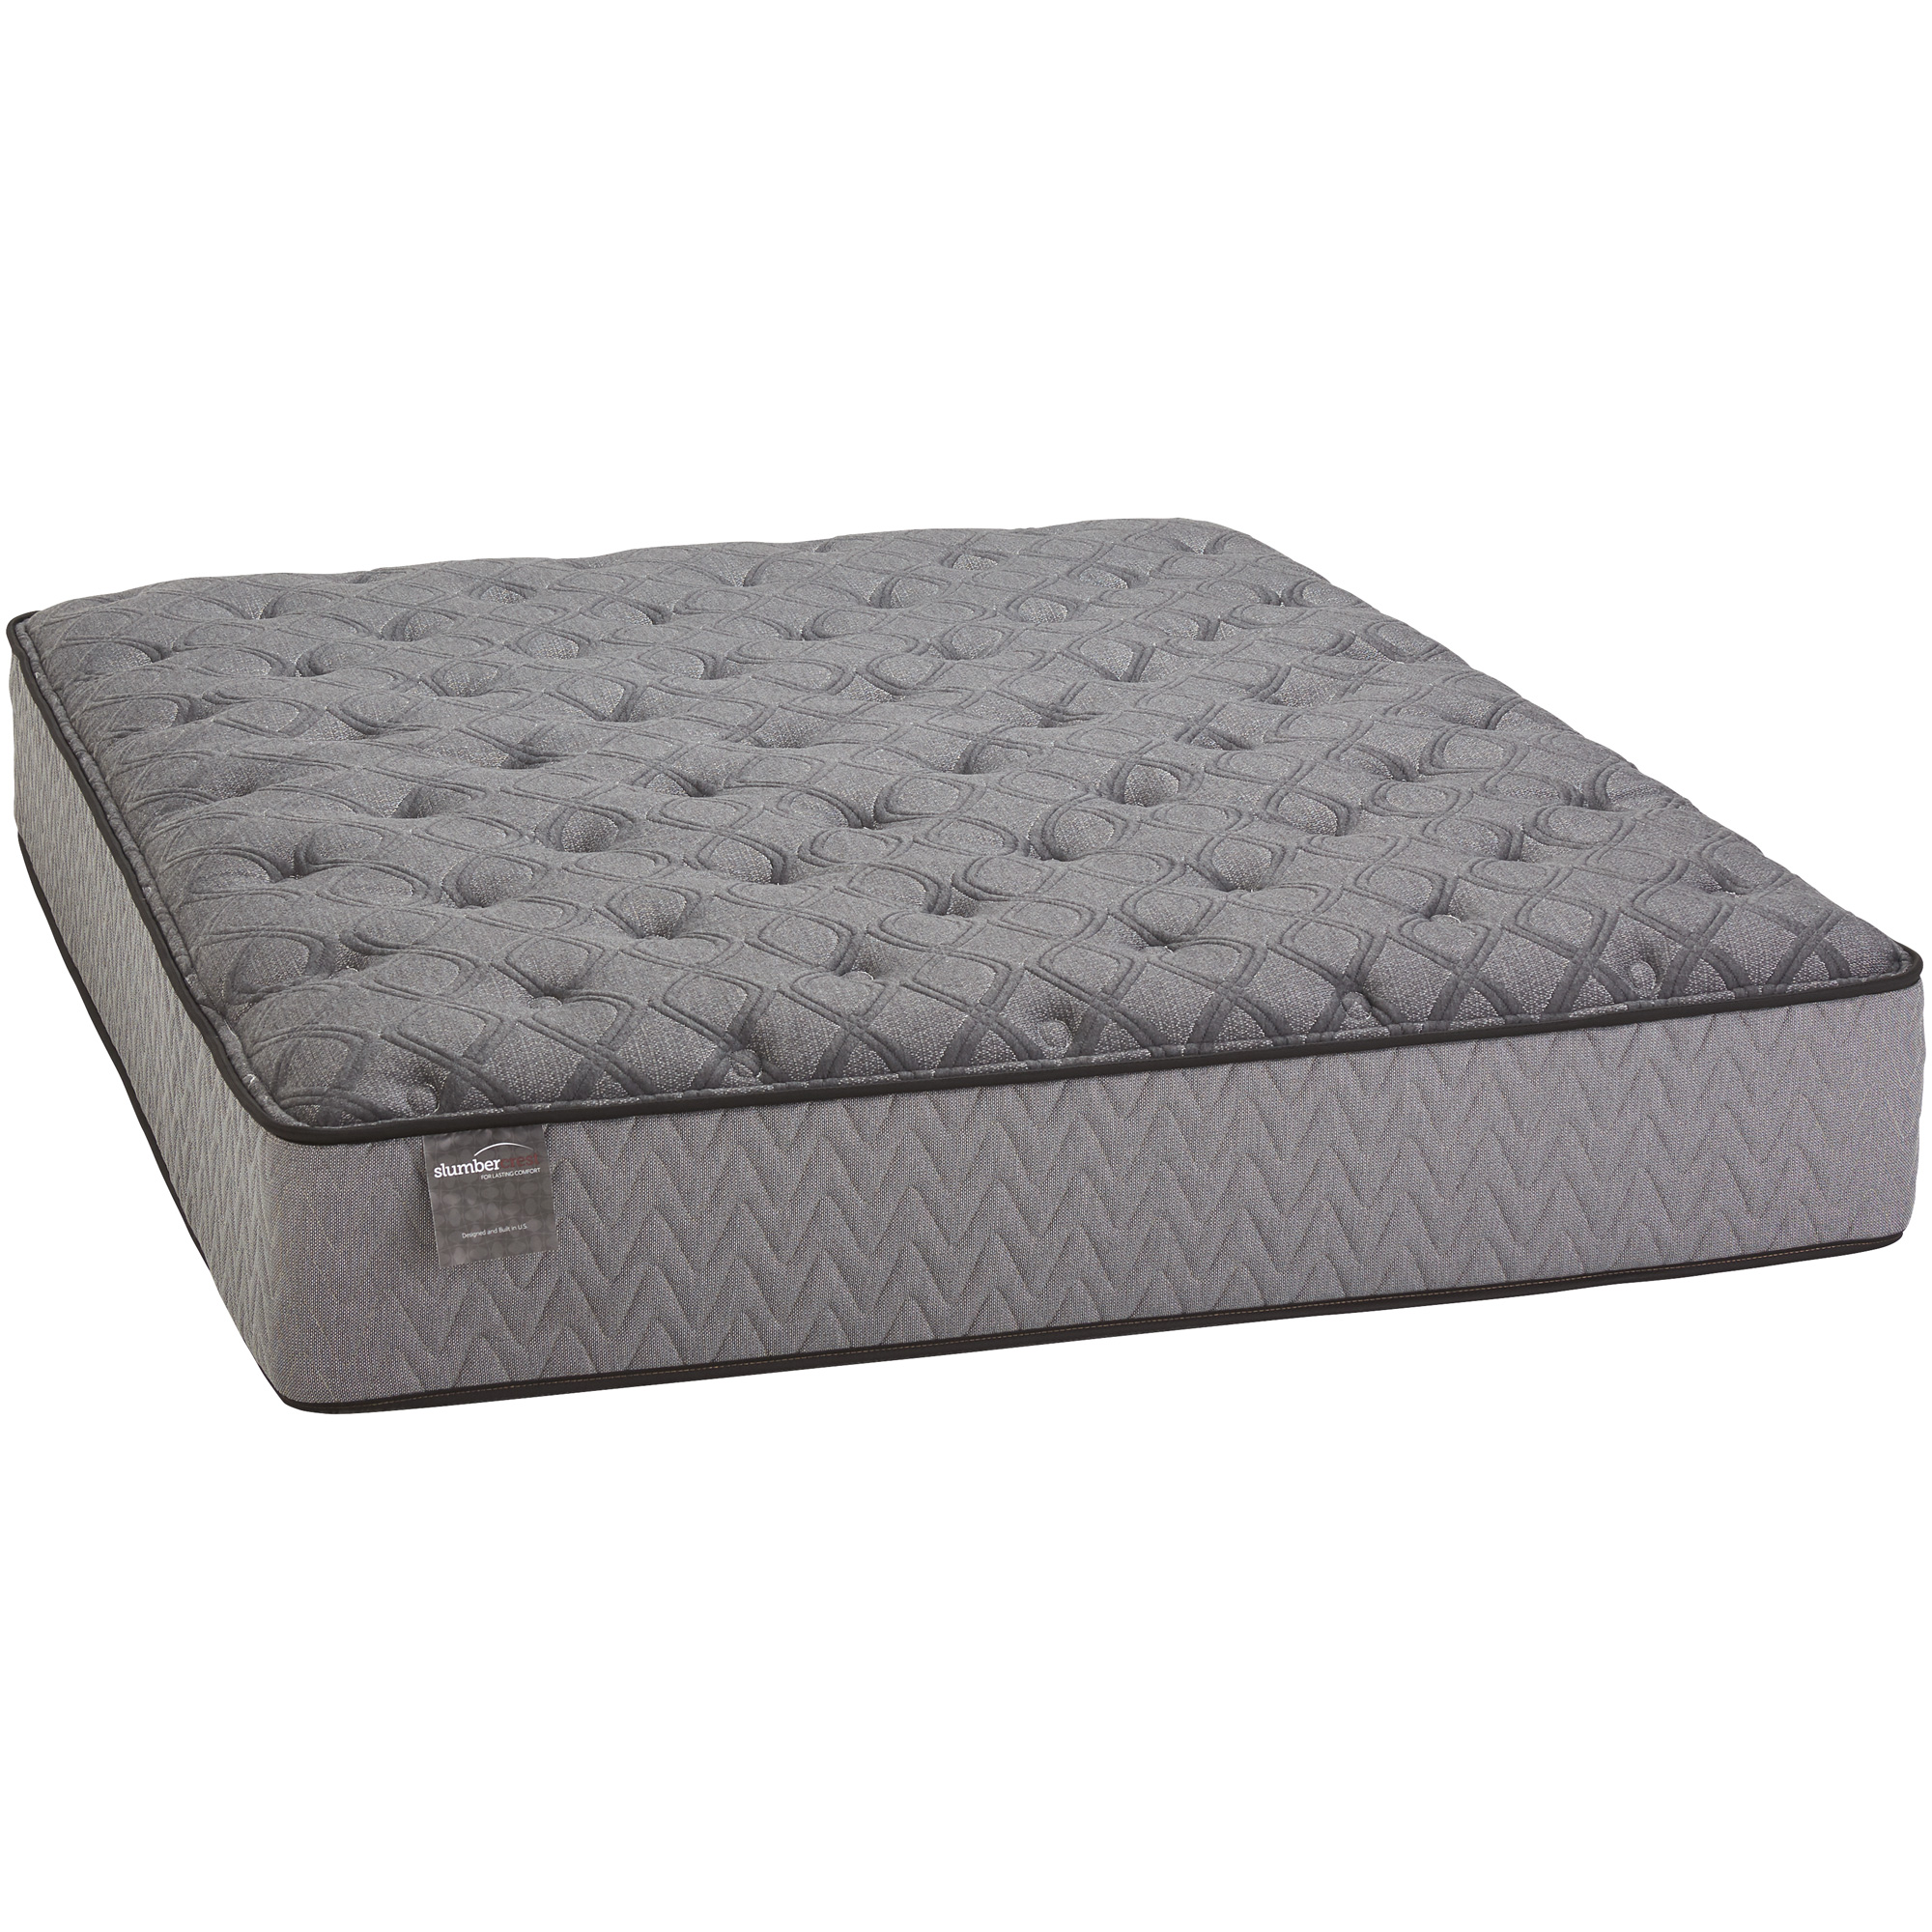 Slumbercrest Plush Queen Mattress